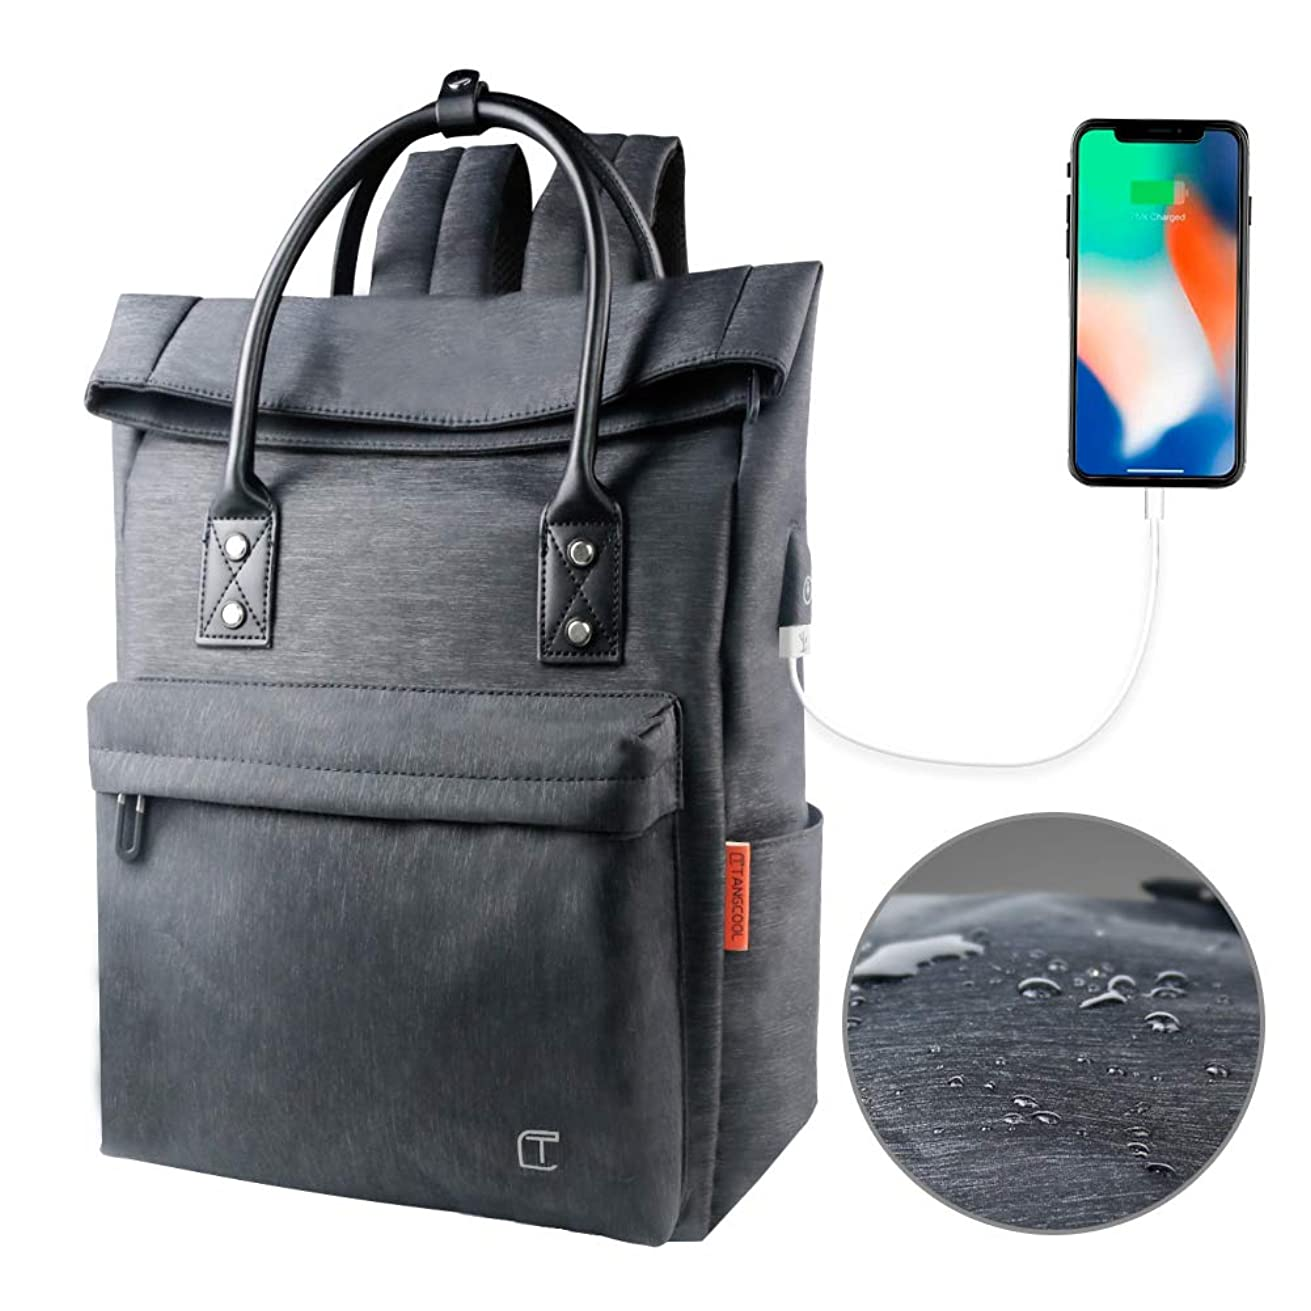 Waterproof Laptop Backpack for Women Men Antitheft Convertible Backpack Tote with USB Slim Computer College Bookbags Business Bag -15.6 inch Laptop Bag - Grey